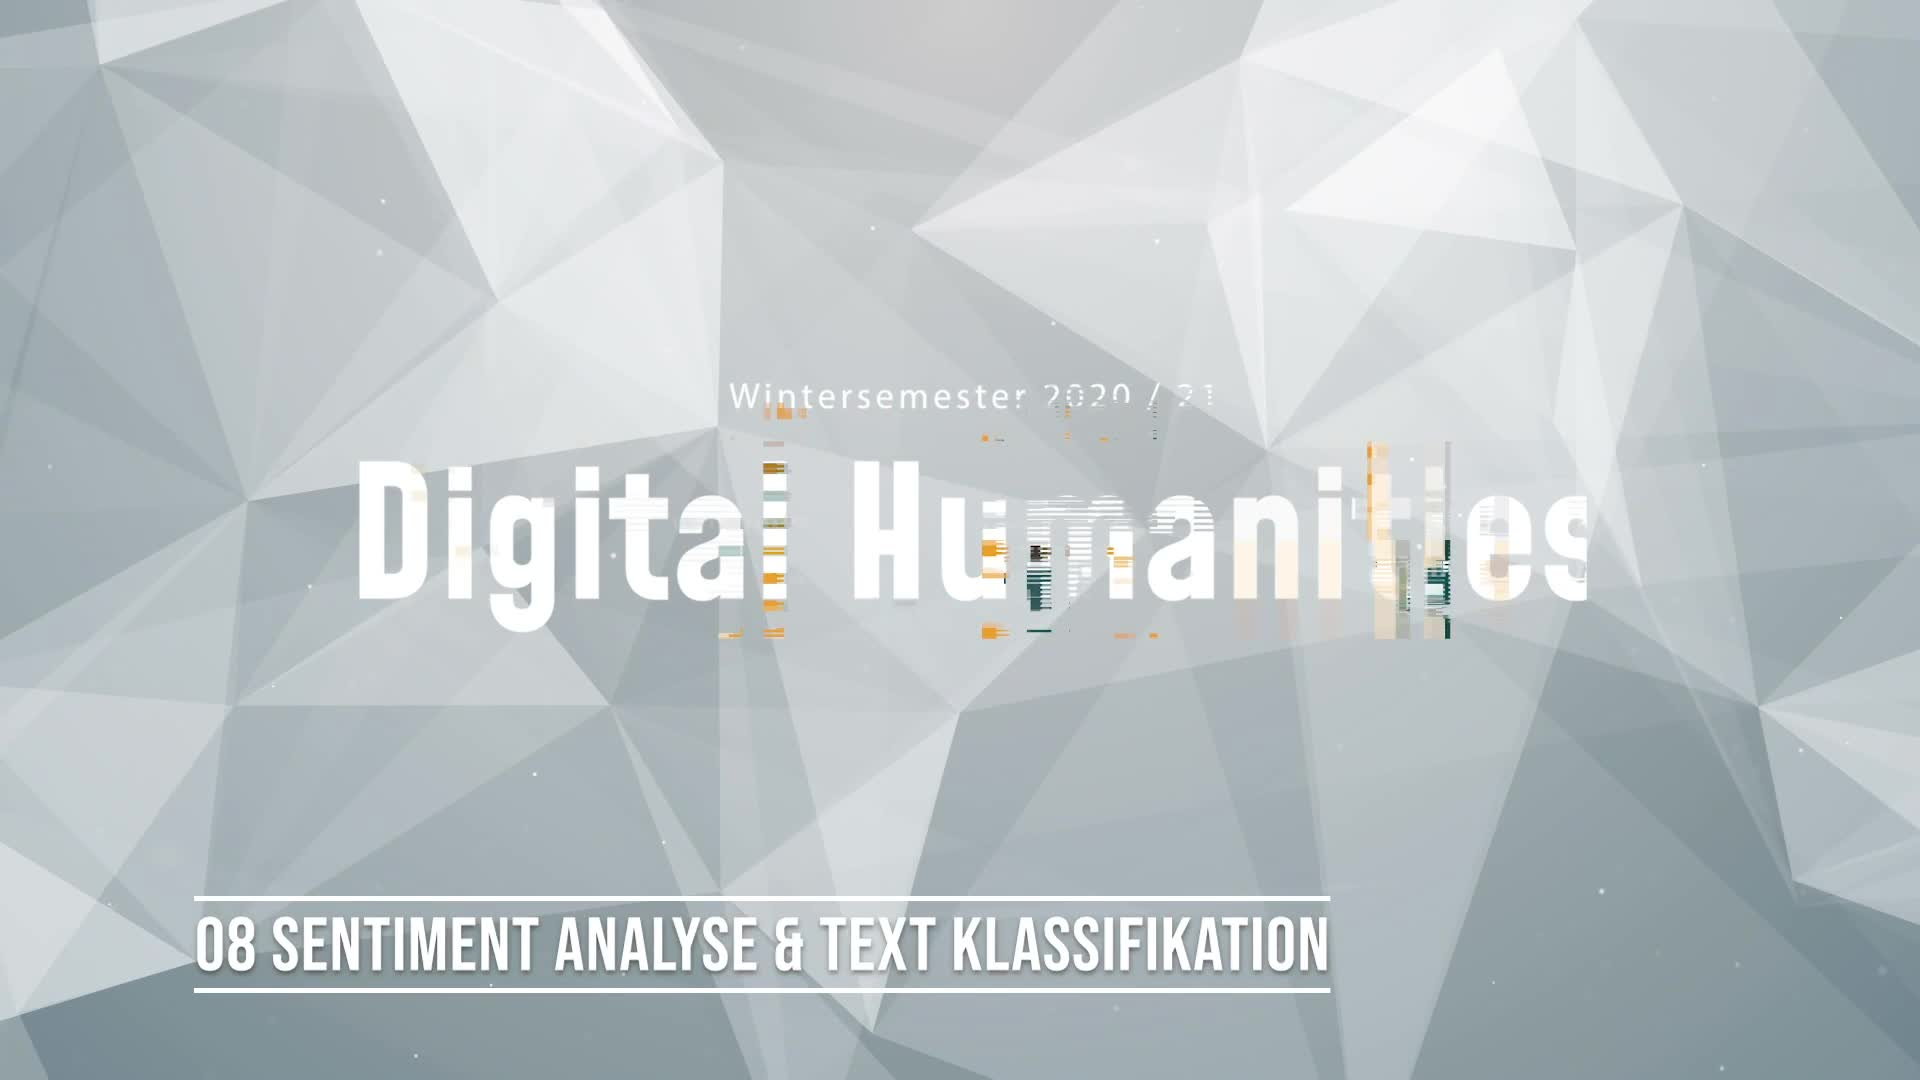 08 Sentiment Analyse & Text Klassifikation